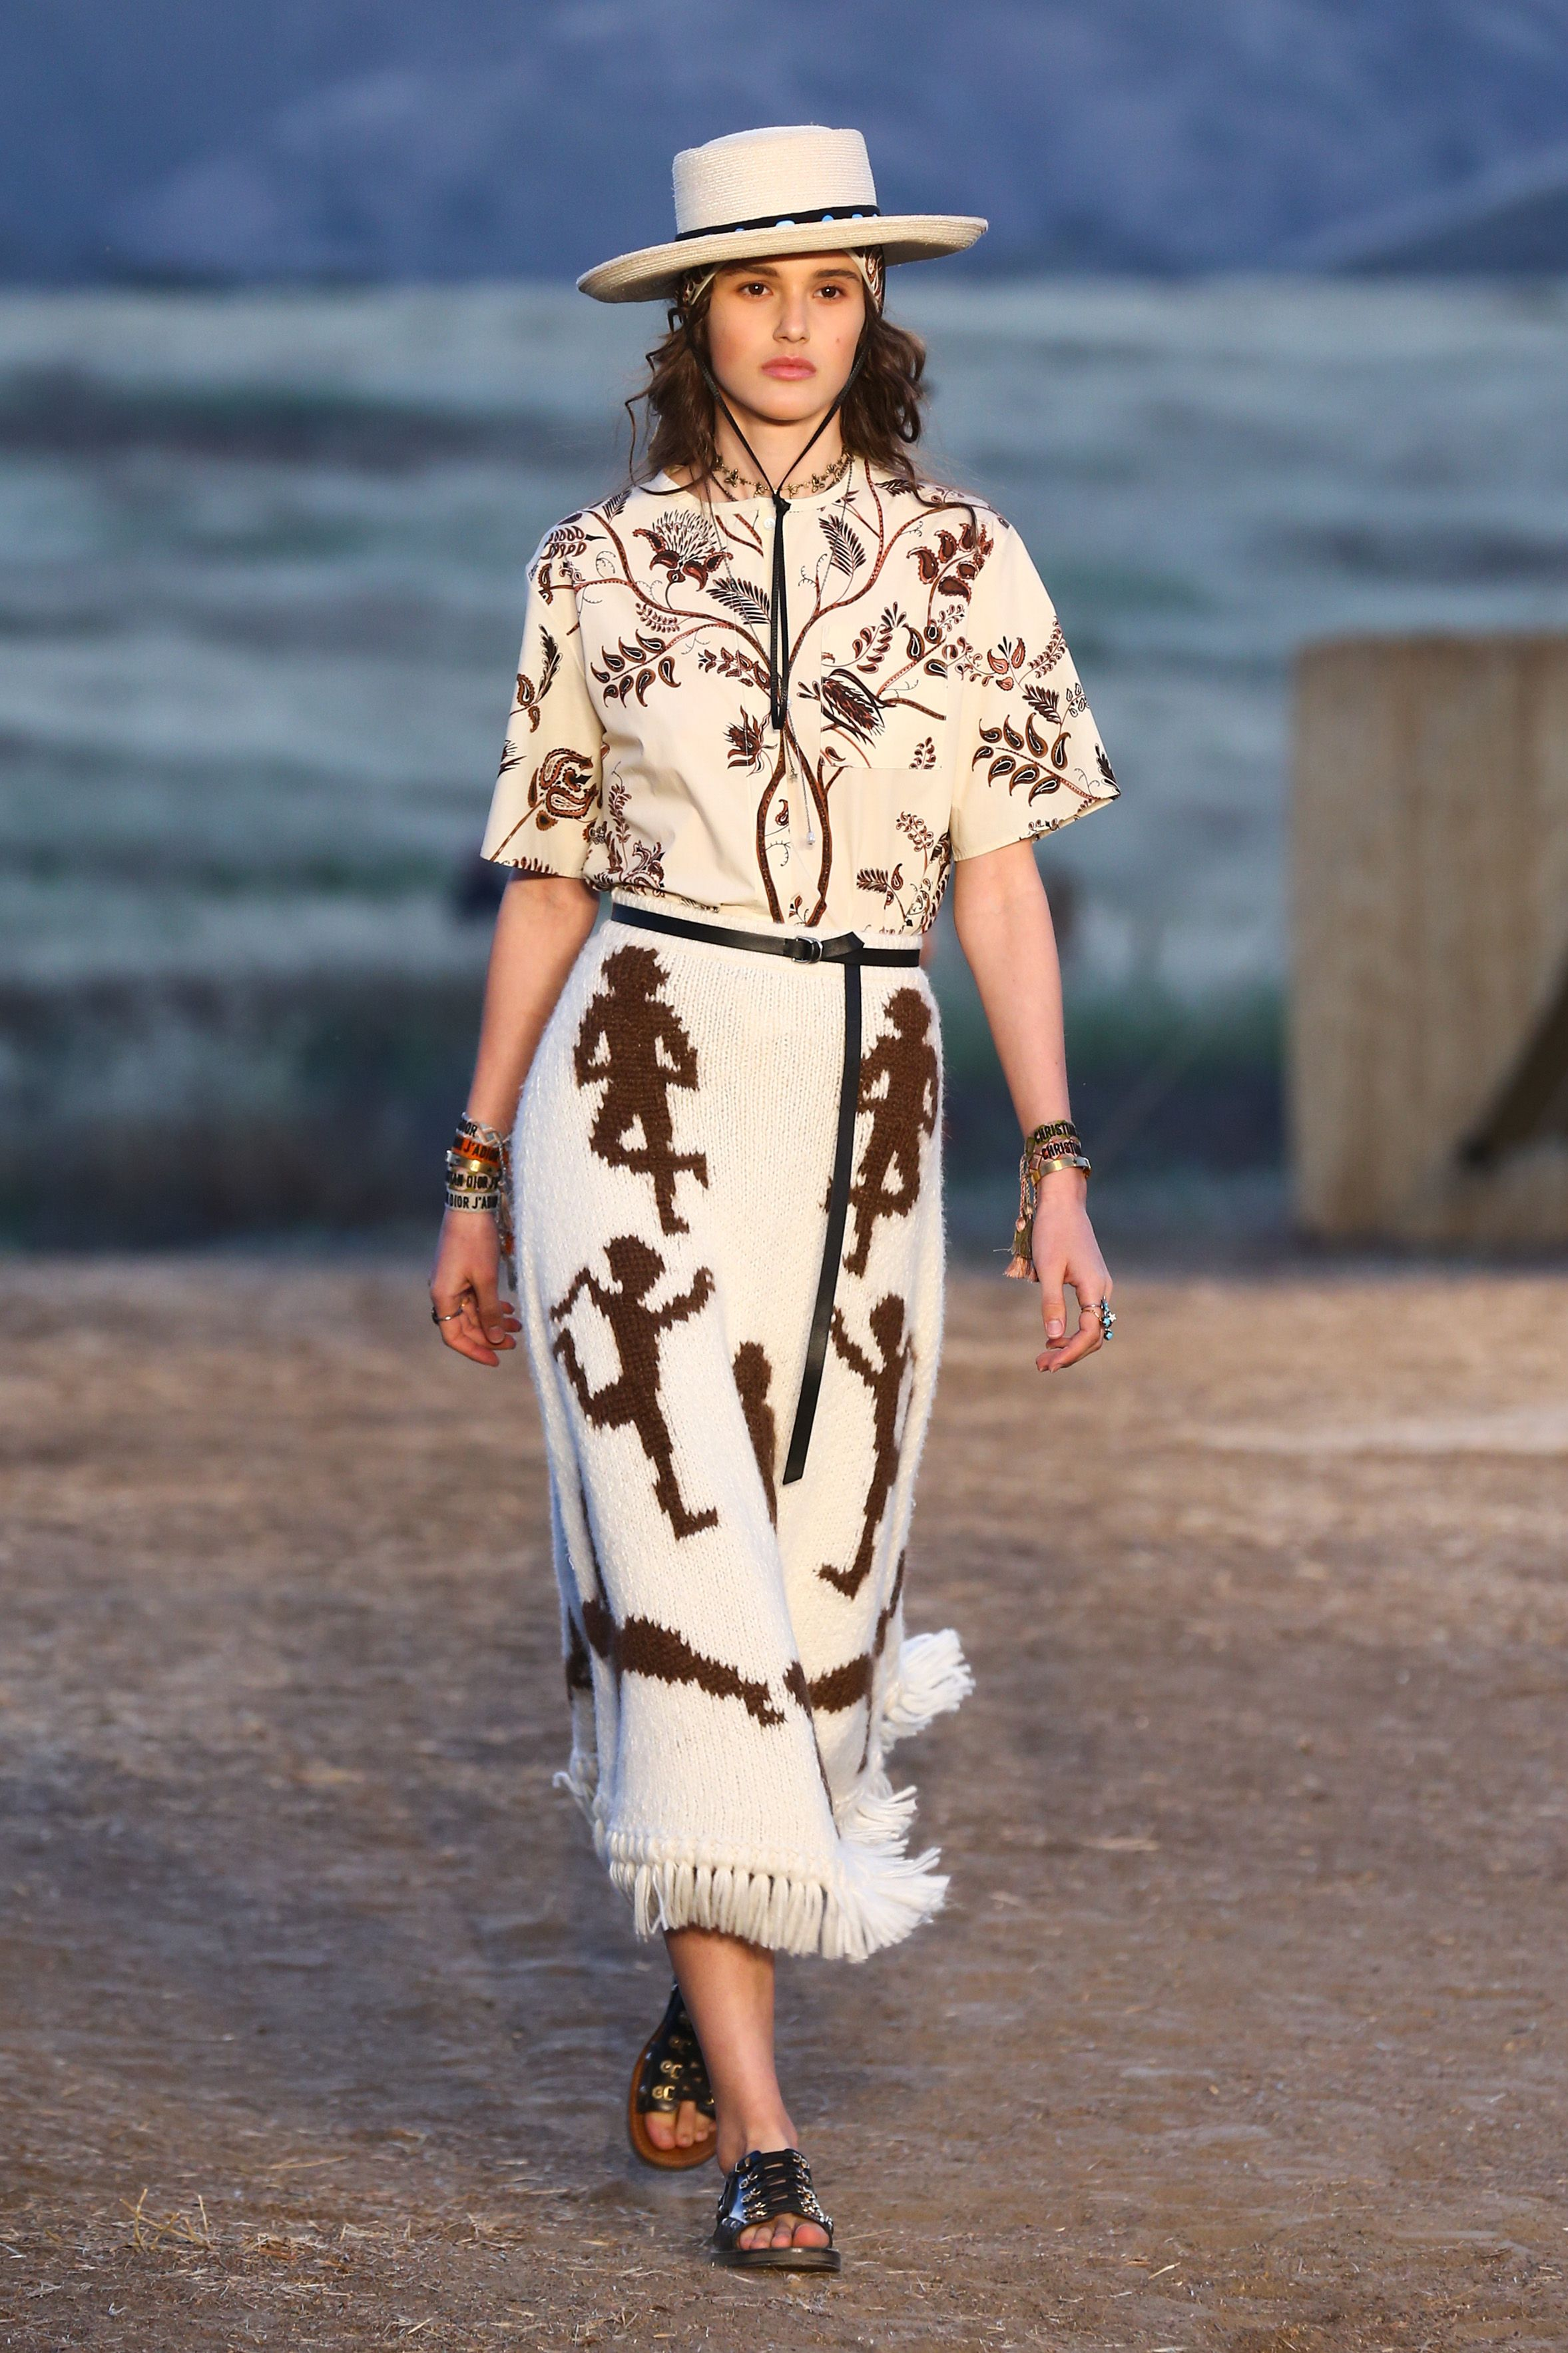 Why Are Runway Clothes So Weird: The Most Amazing Looks From Dior's Wild Wild West Cruise